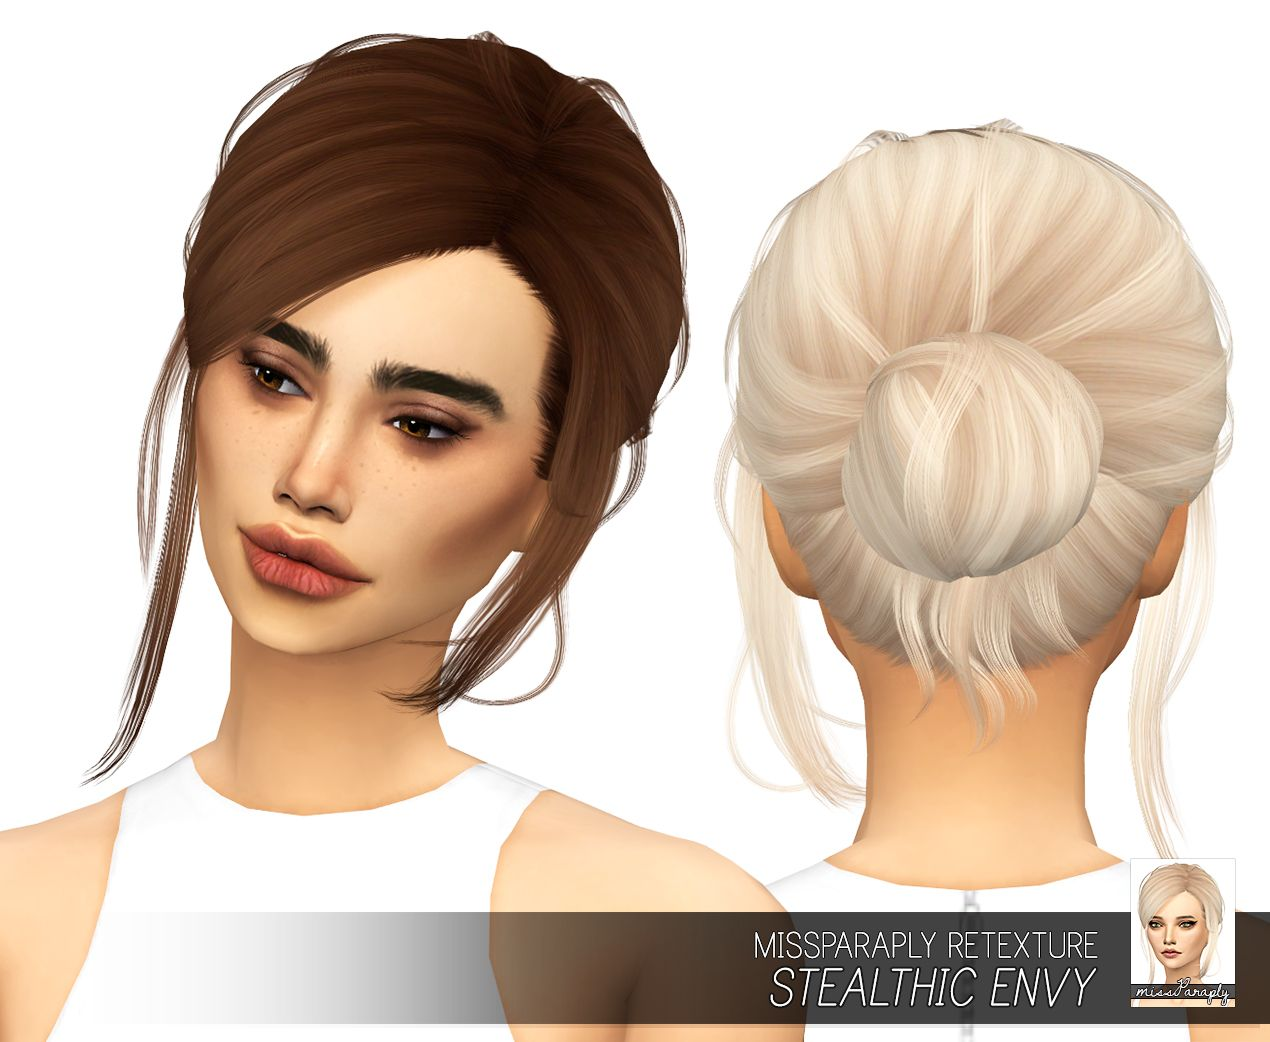 The sims 4 hairstyles cc - Lana Cc Finds Missparaply Ts4 Stealthic Envy Solids 64